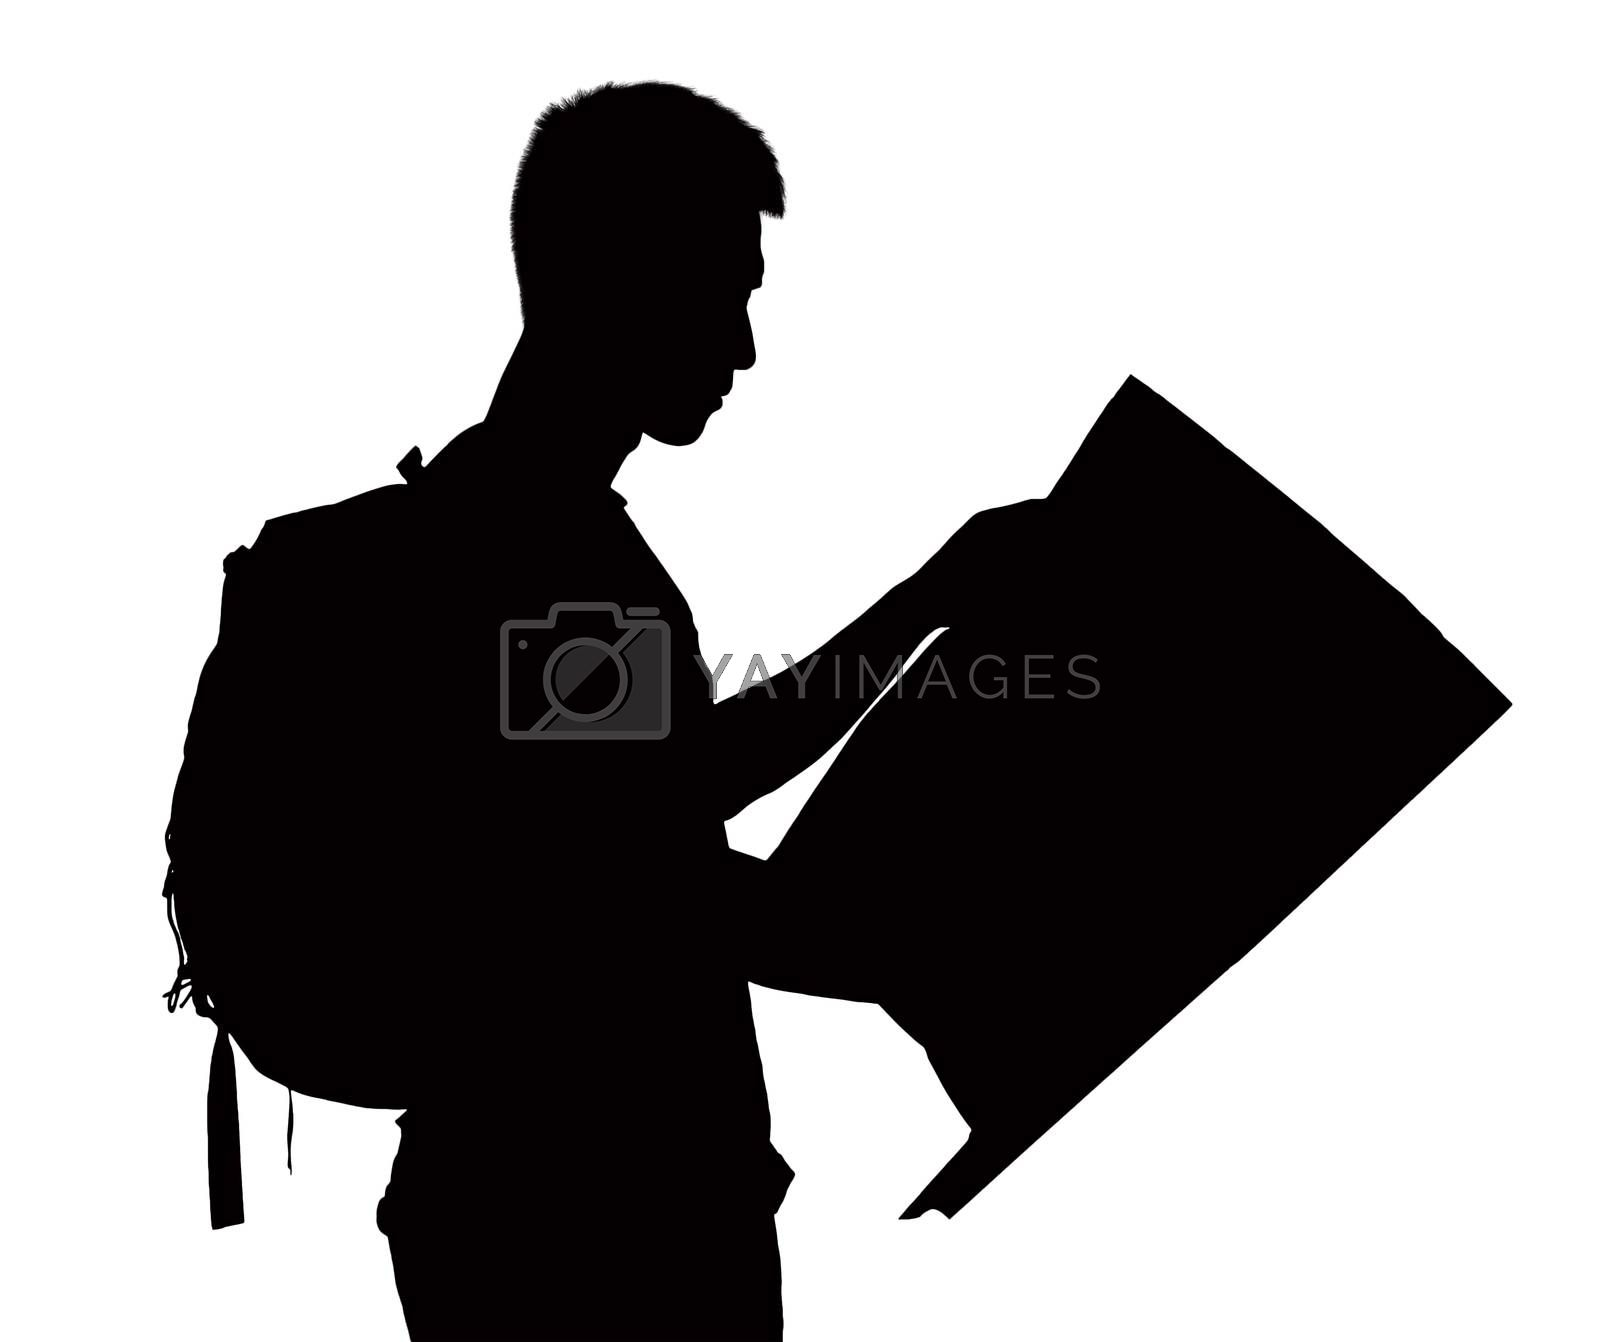 Silhouette of man looking at map.